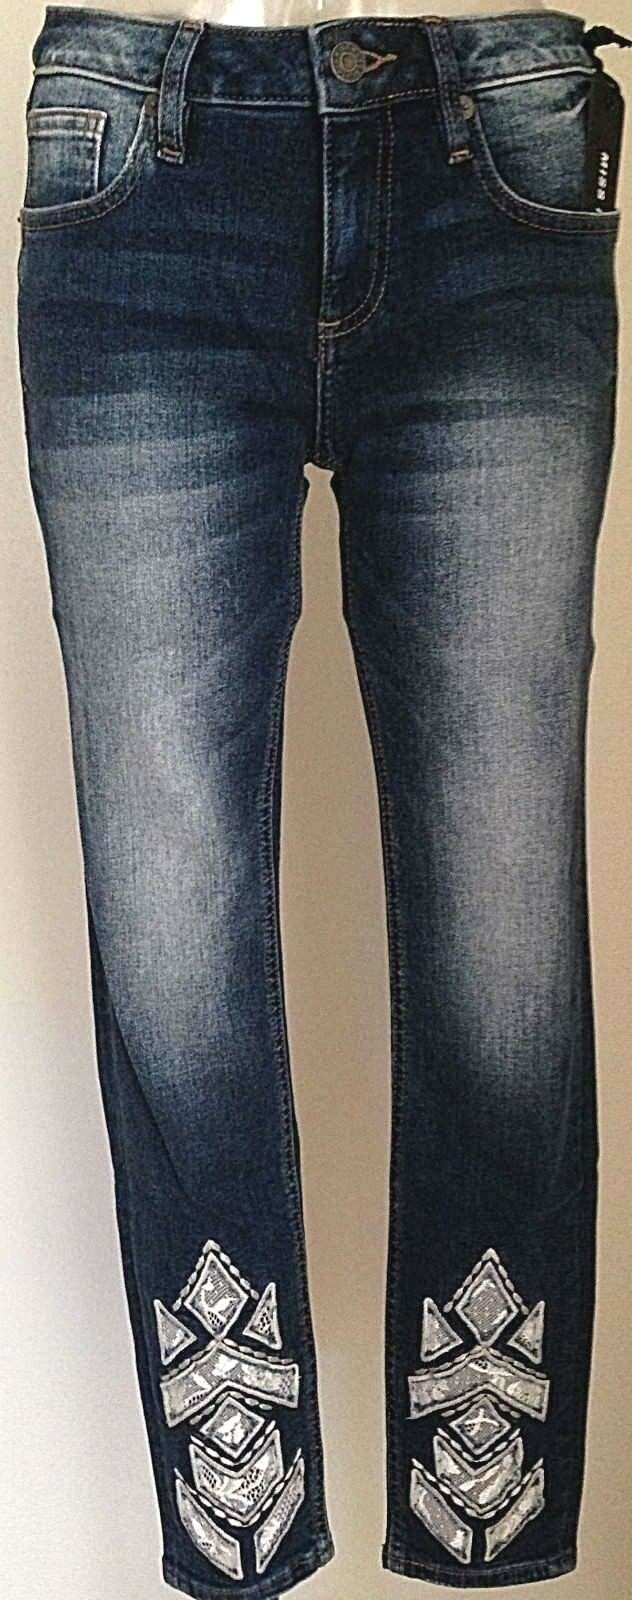 NEW WOMEN'S MISS ME JEANS WITH TAG 2008AK ANKLE SKINNY INSEAM 27